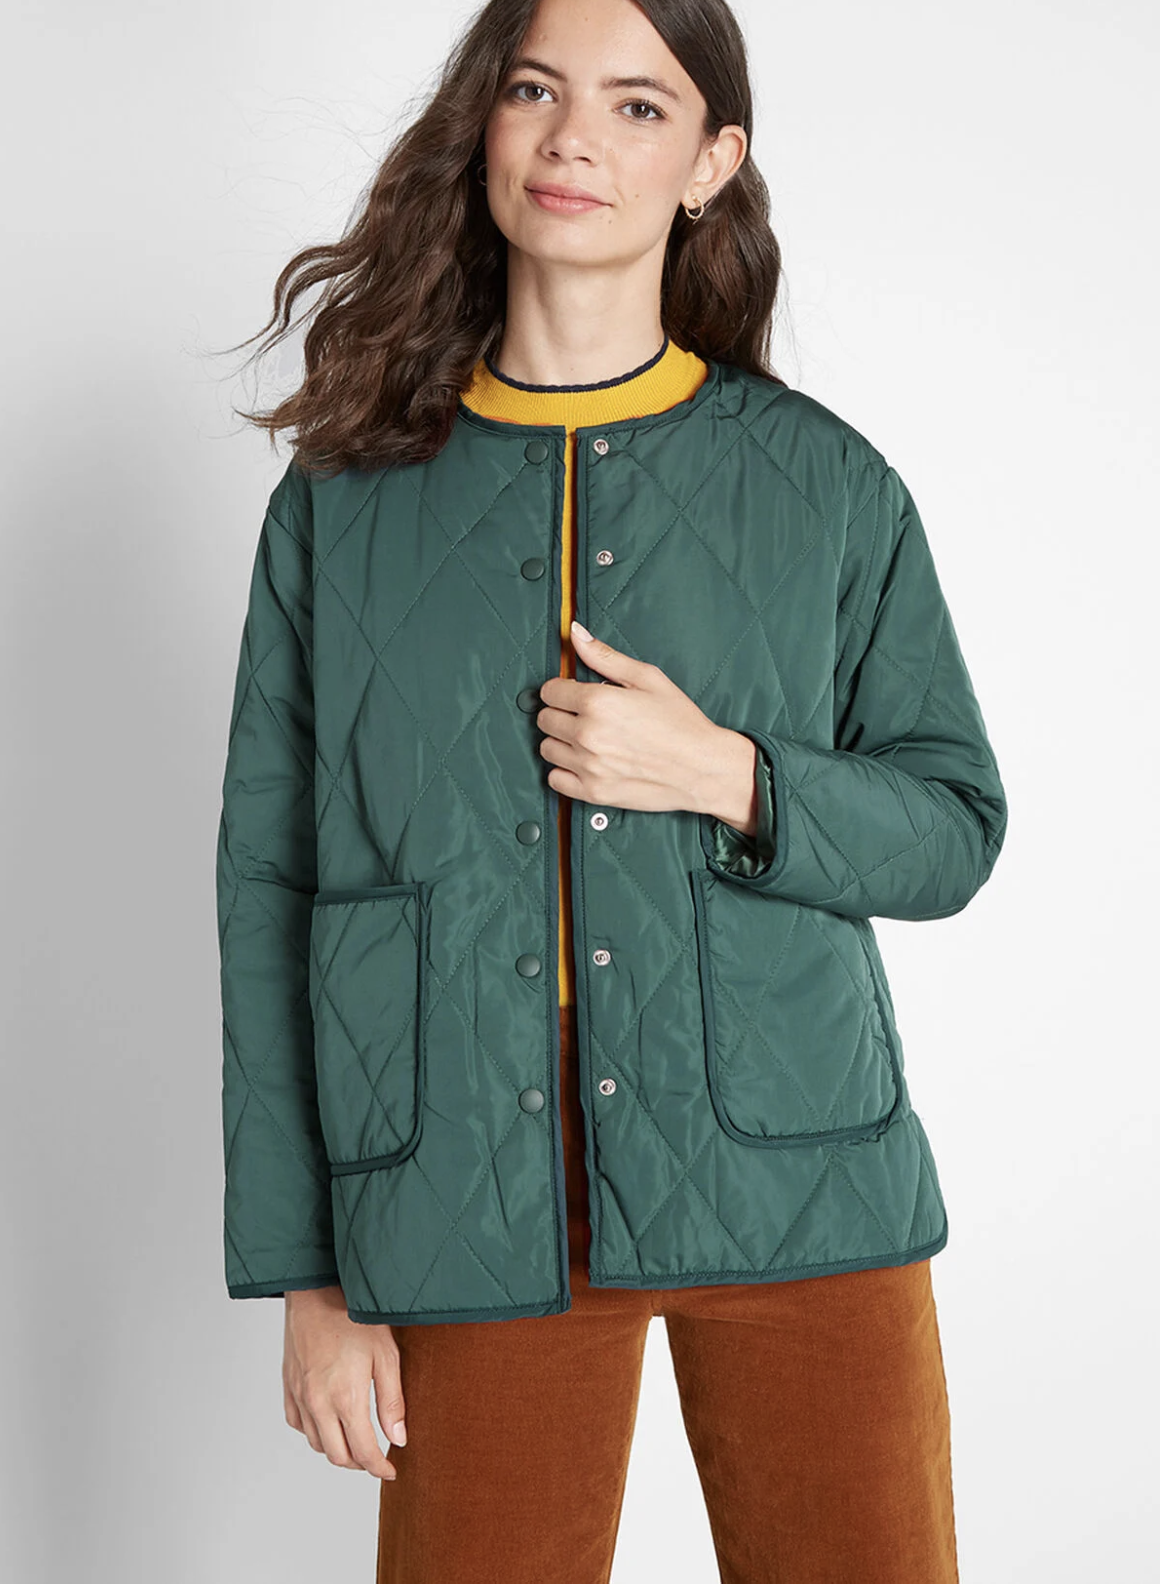 Model in green button up light puffer jacket with front pockets